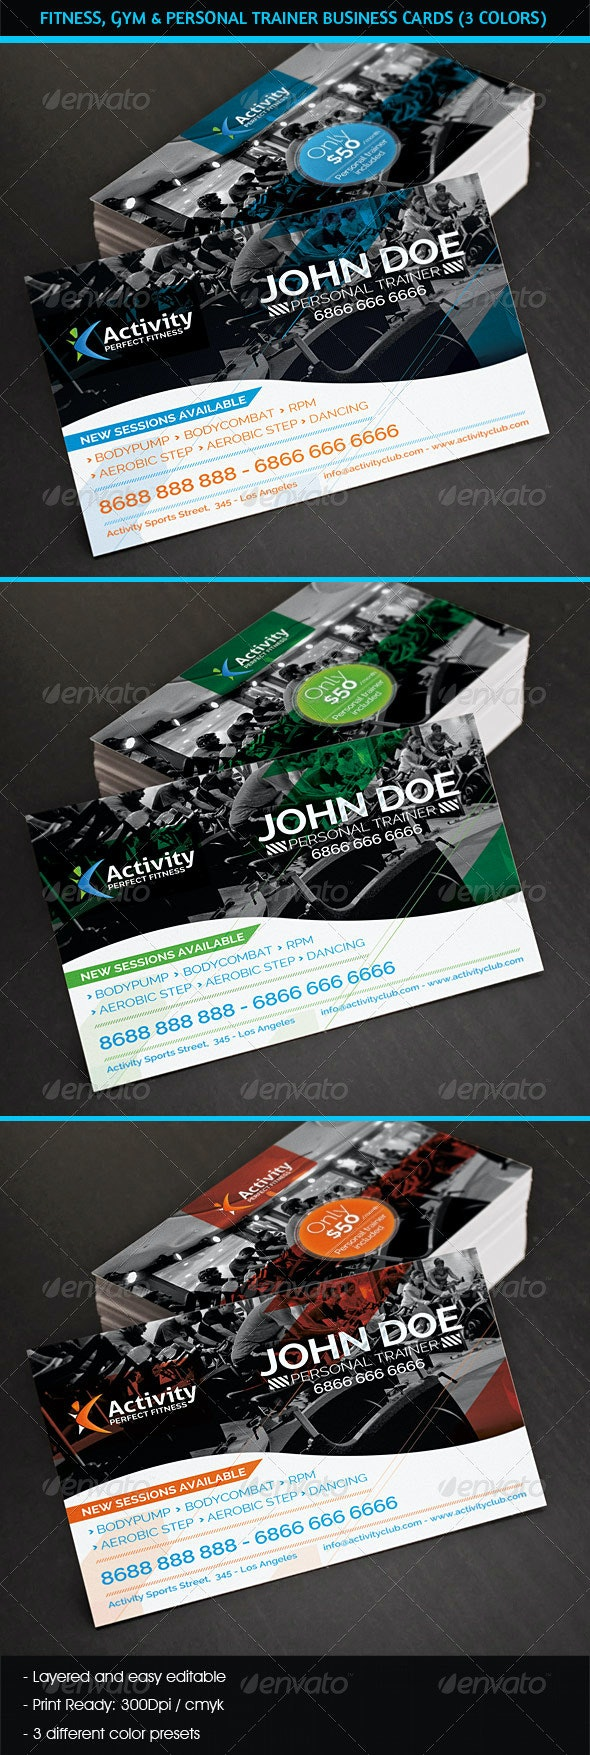 Fitness, Gym & Personal Trainer Business Cards - Industry Specific Business Cards